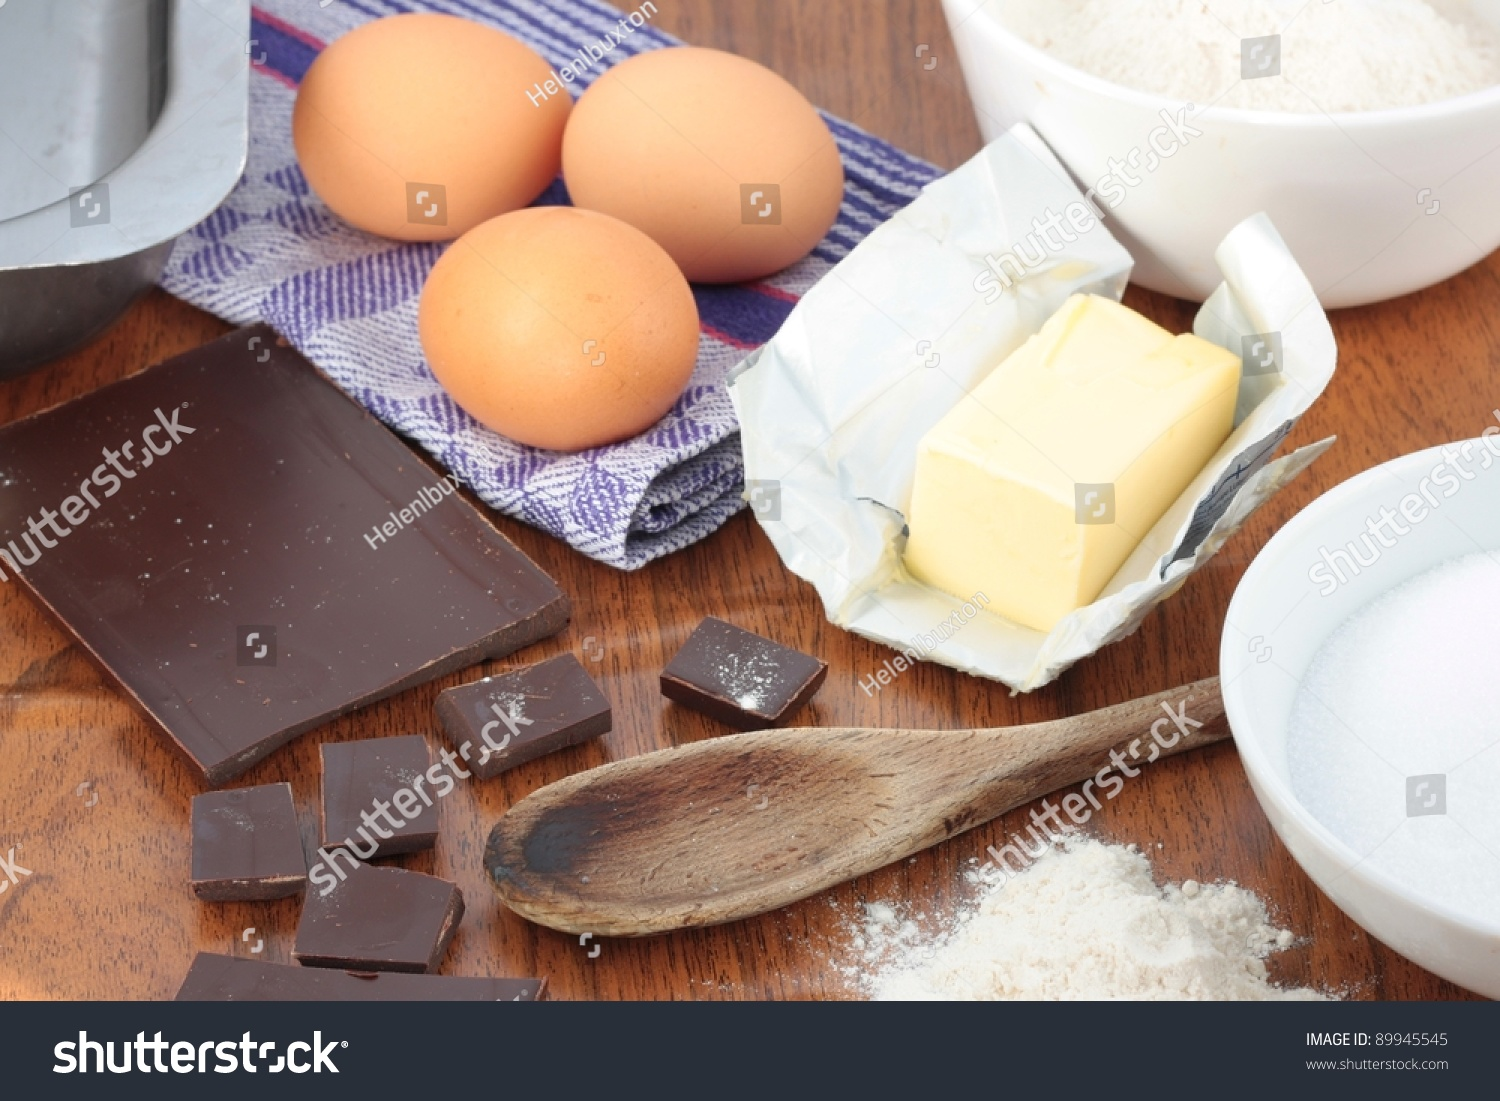 Ingredients For Baking A Chocolate Cake Or Chocolate